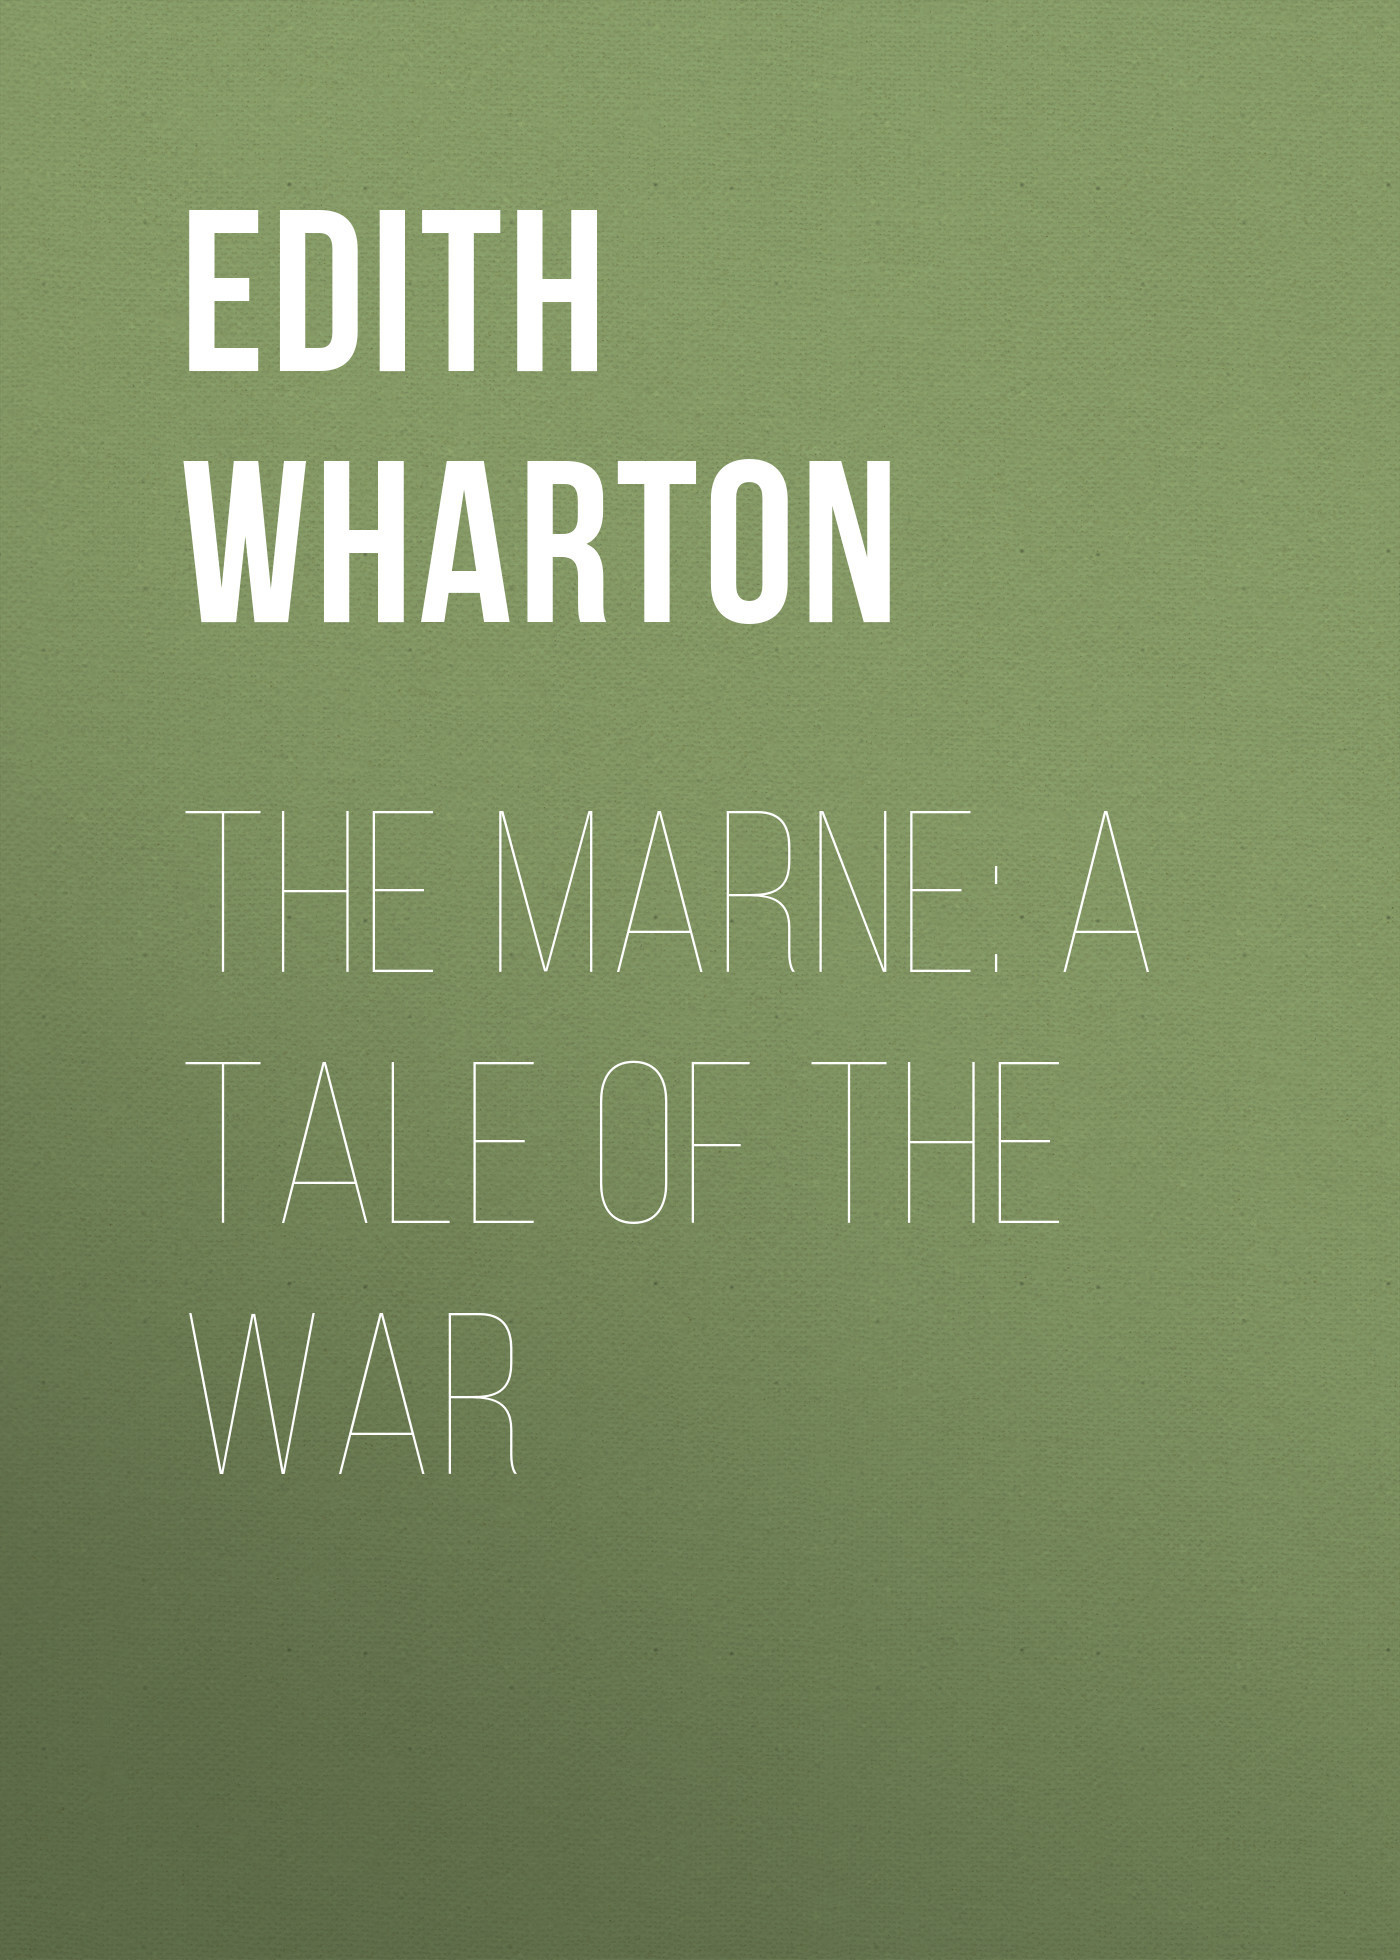 Edith Wharton The Marne: A Tale of the War велосипед bulls nandi street 27 5 2016